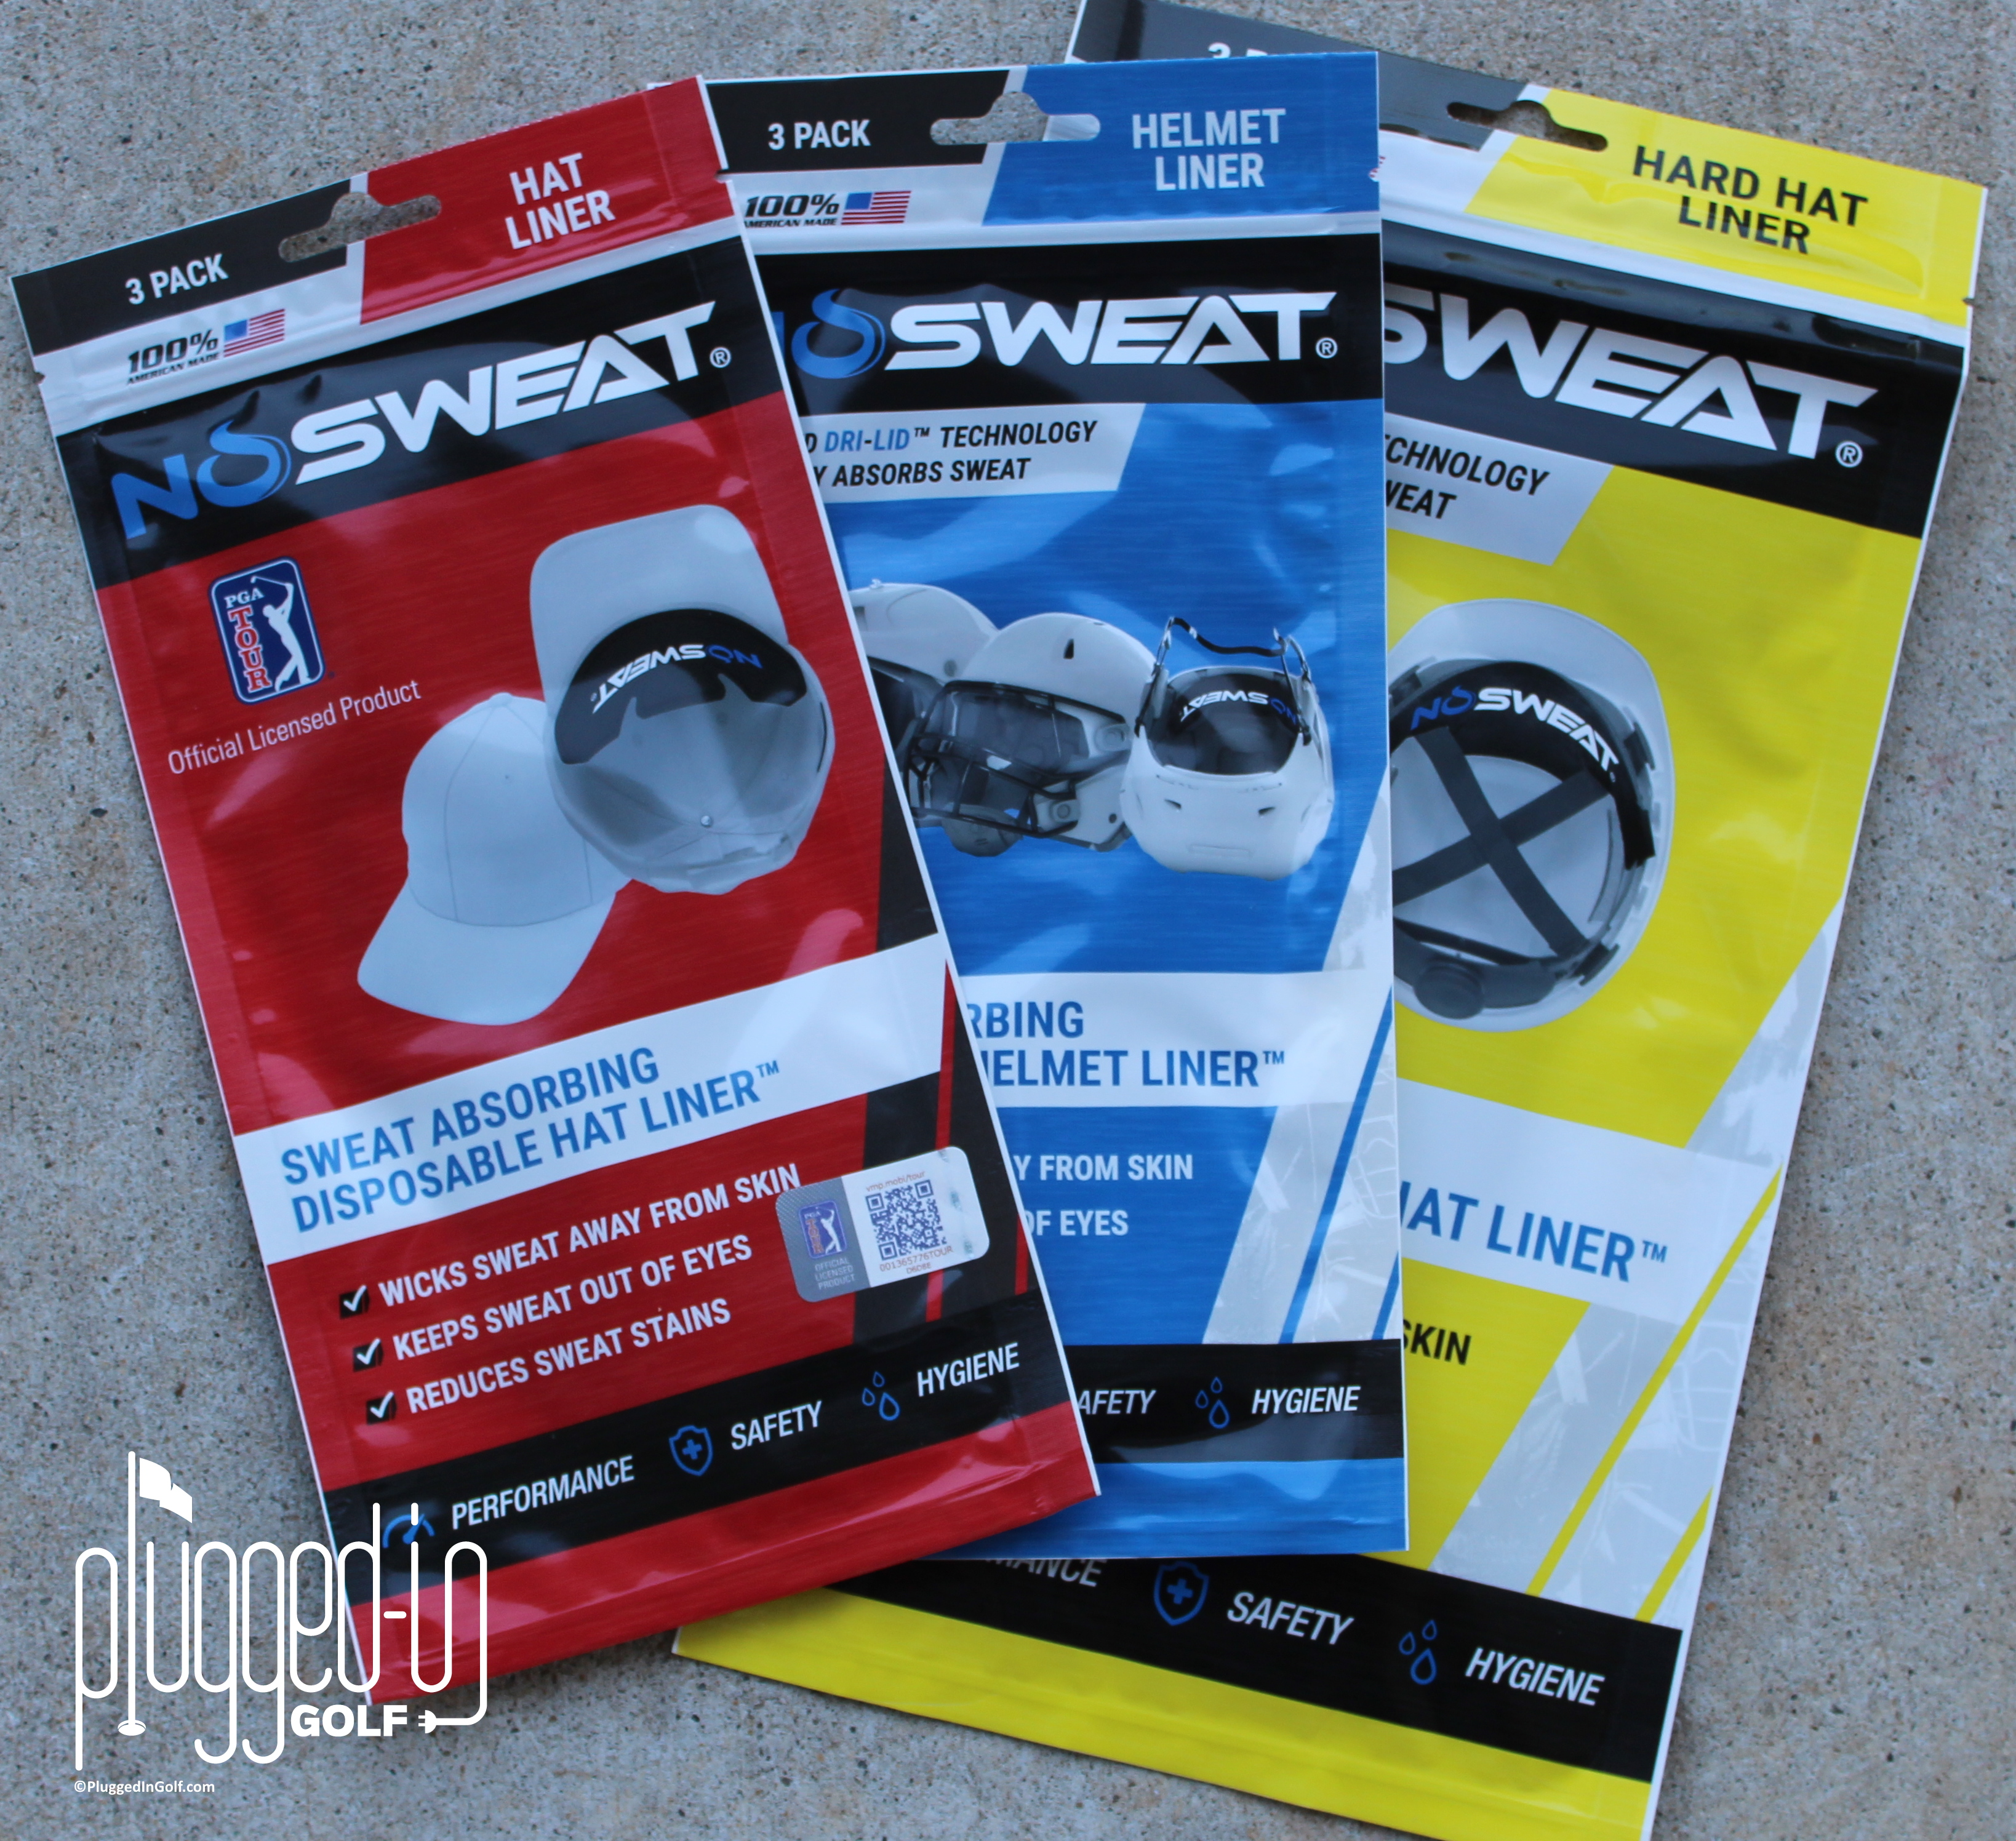 Nosweat Hat Liners Review Plugged In Golf